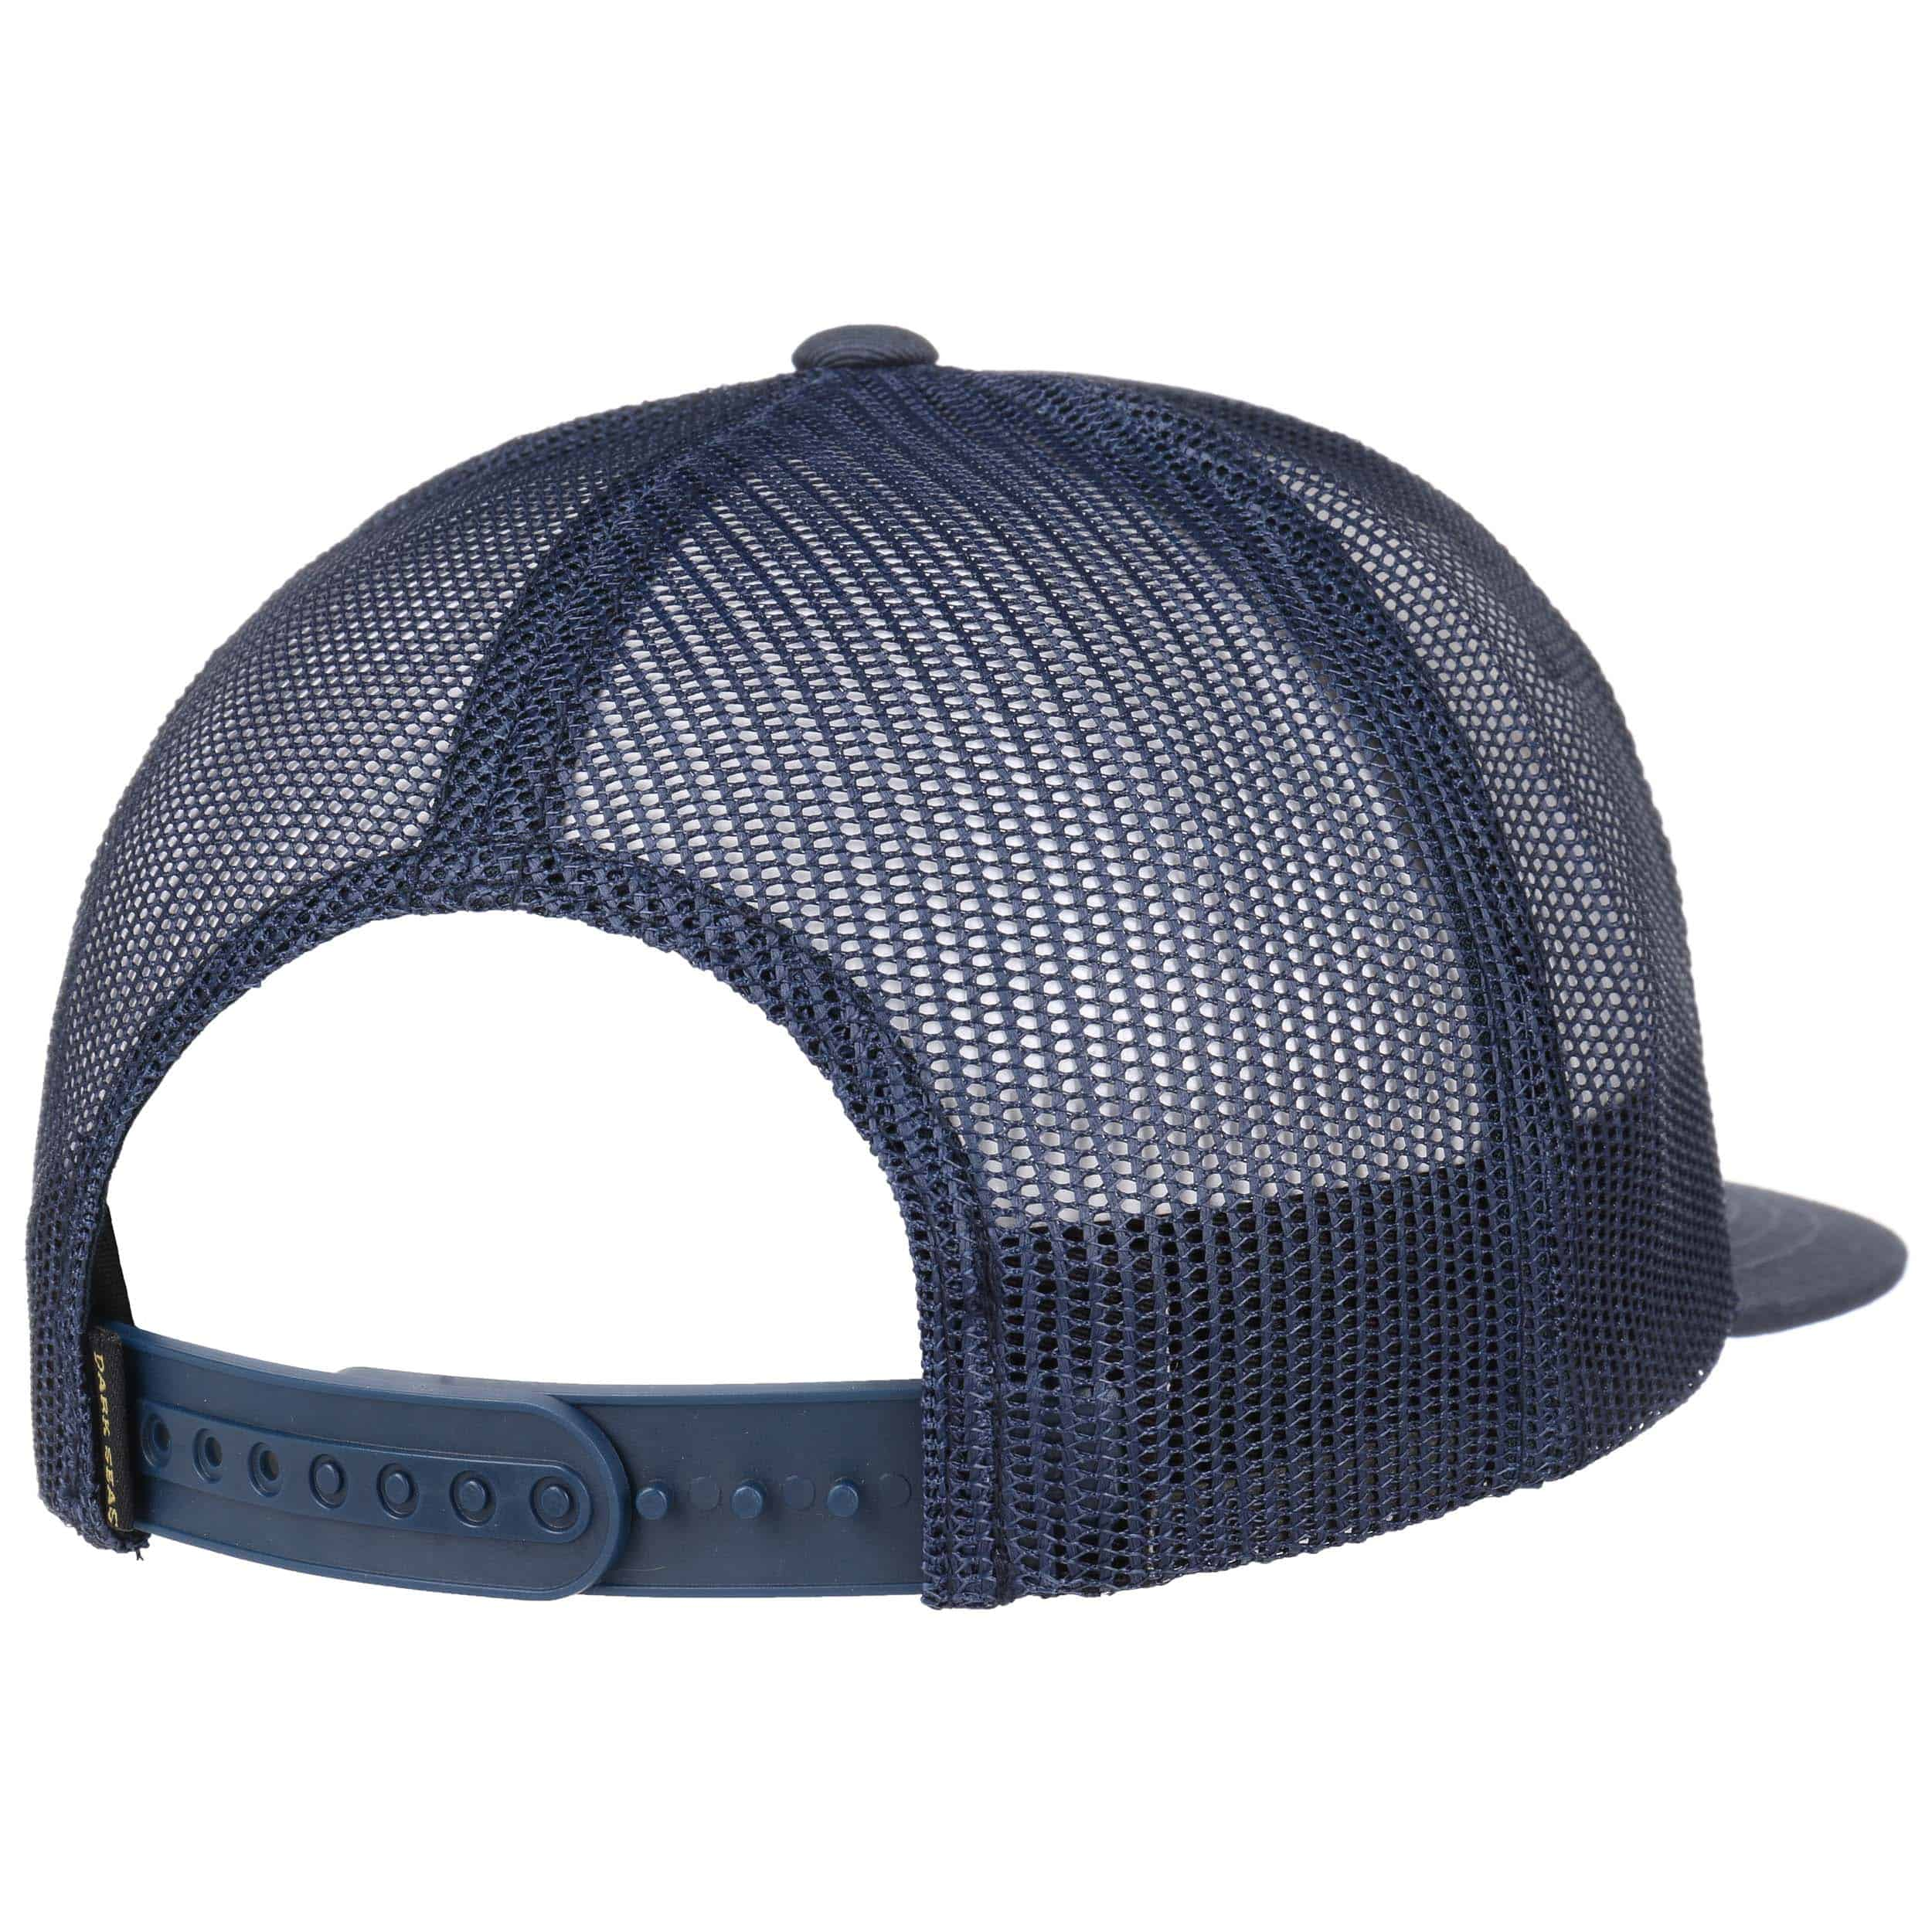 Dock Trucker Cap By Dark Seas Eur 39 95 Gt Hats Caps